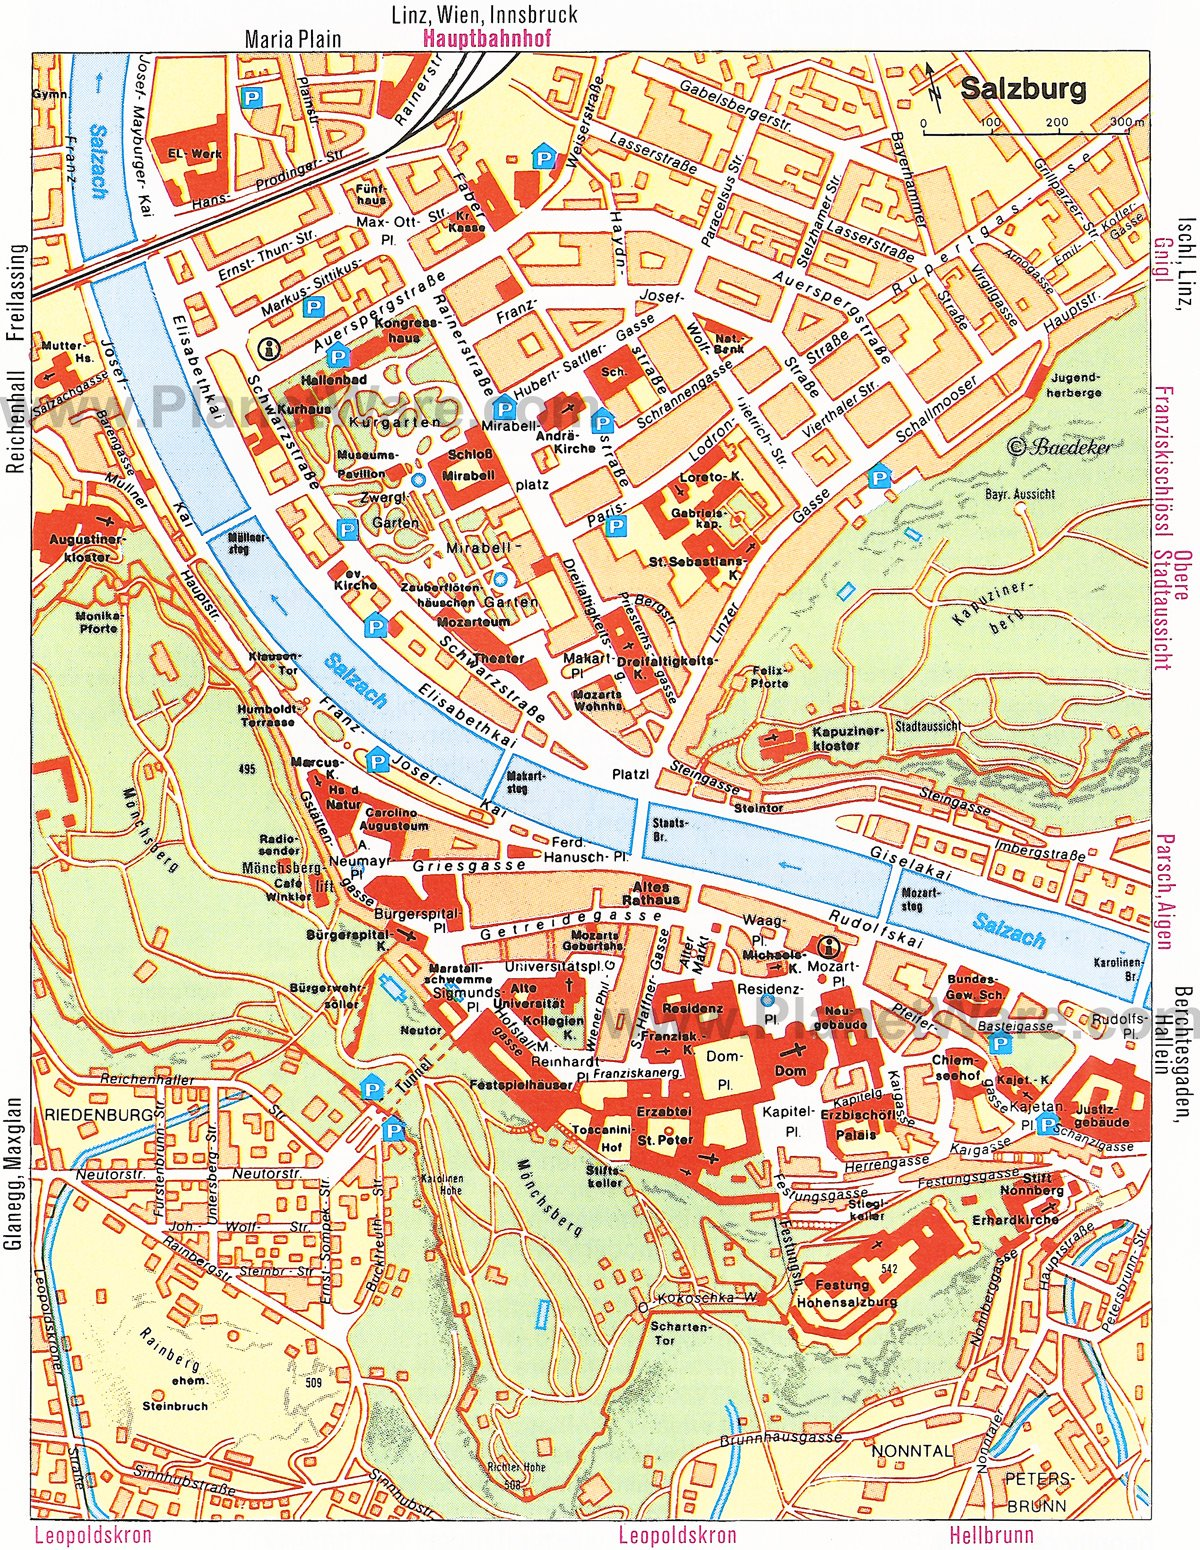 14 Top Tourist Attractions in Salzburg – Munich Tourist Map